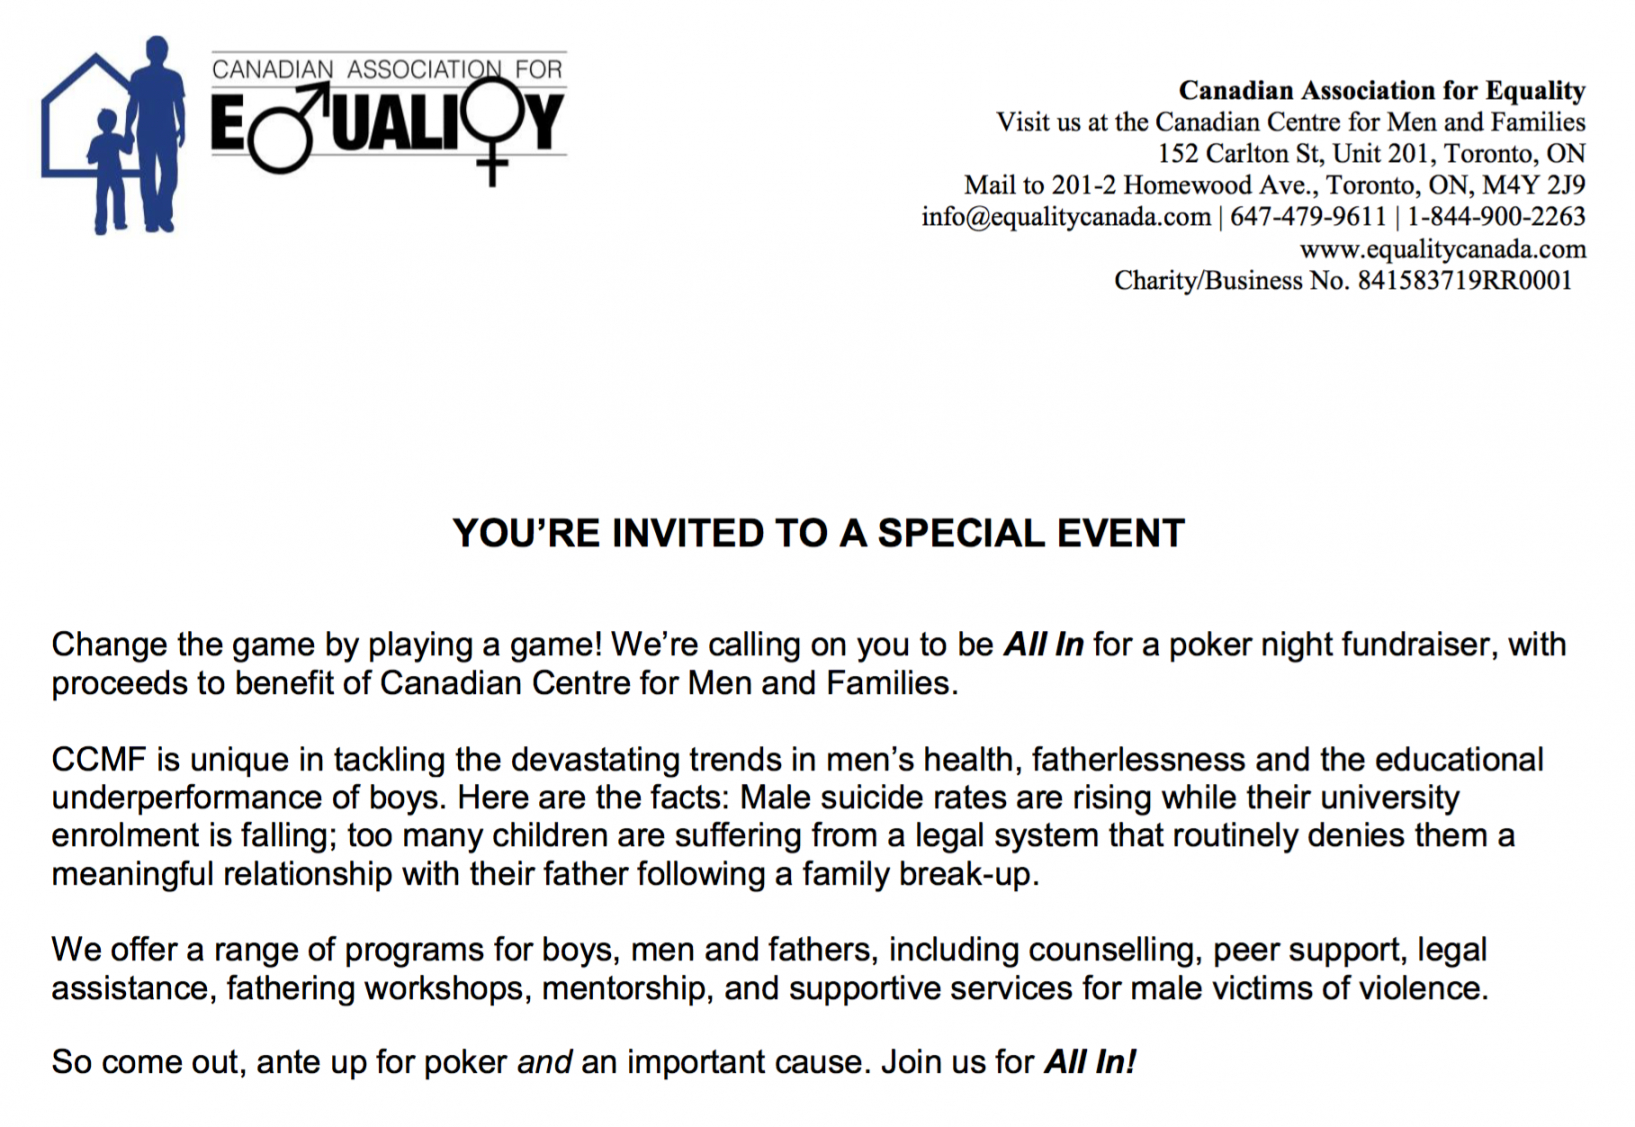 free sampleinvitationletter  canadian centre for men and families fundraising event invitation letter example